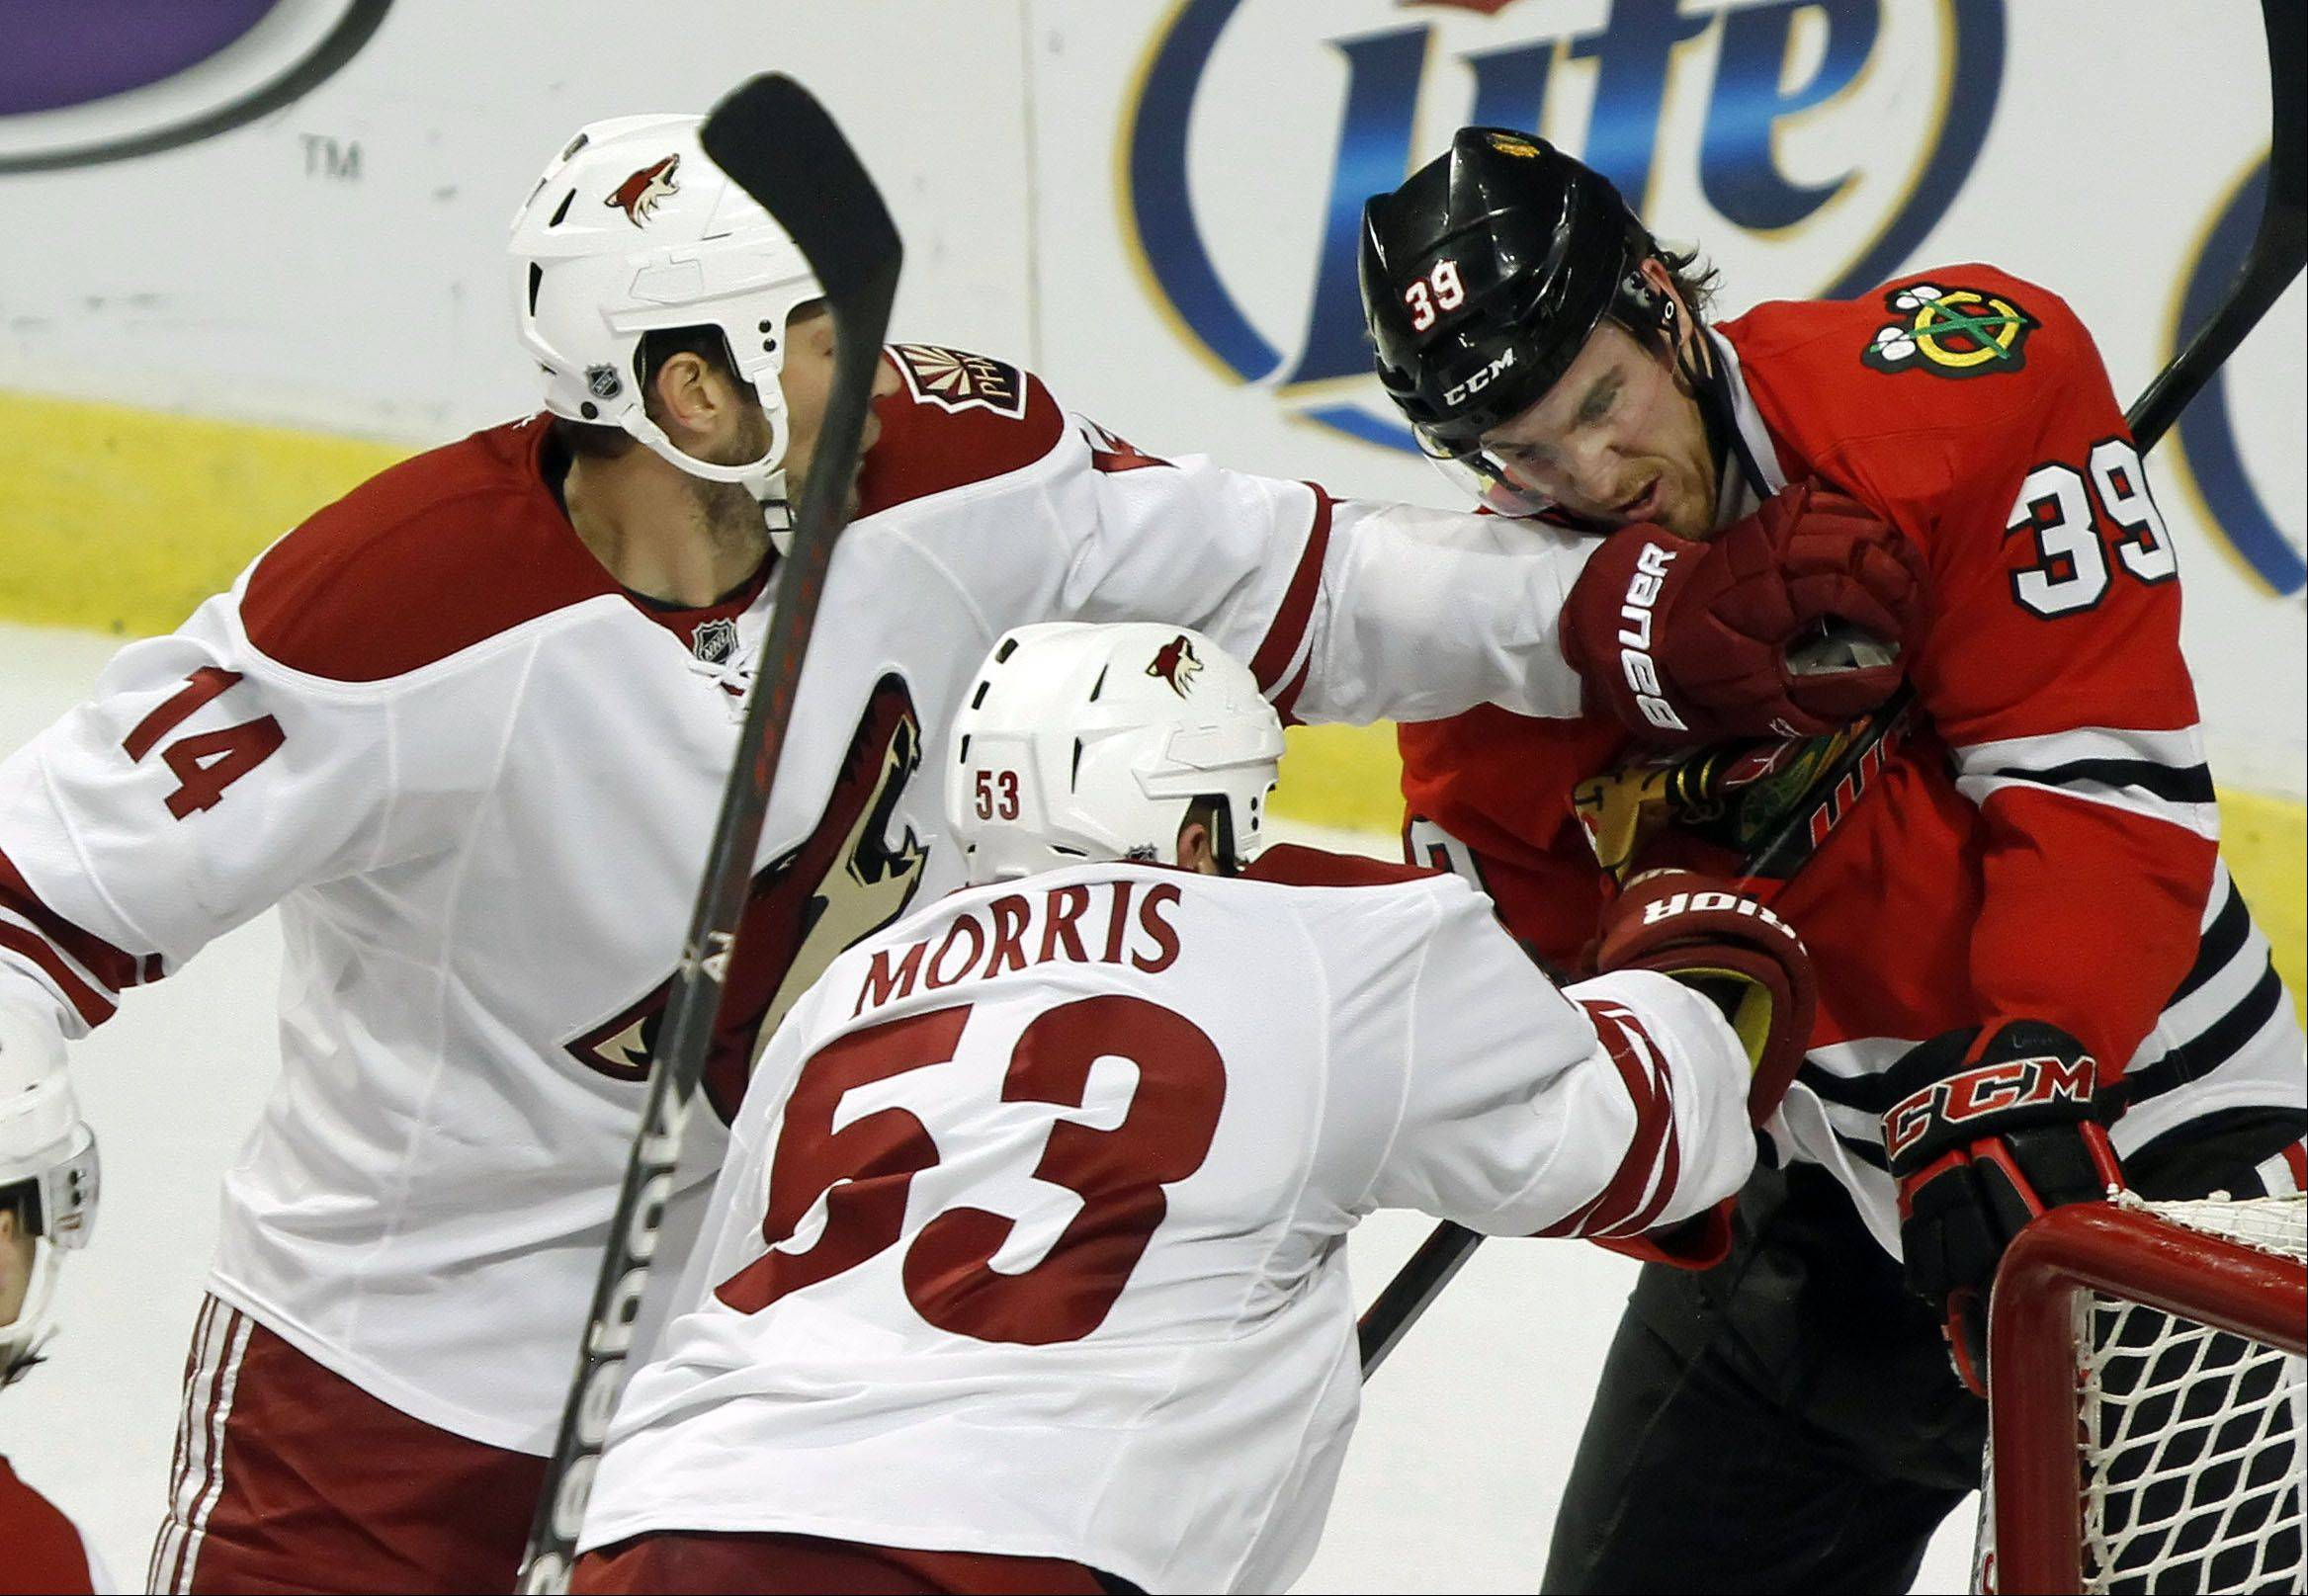 Chicago Blackhawks' center Dave Bolland and defenseman Duncan Keith collide.